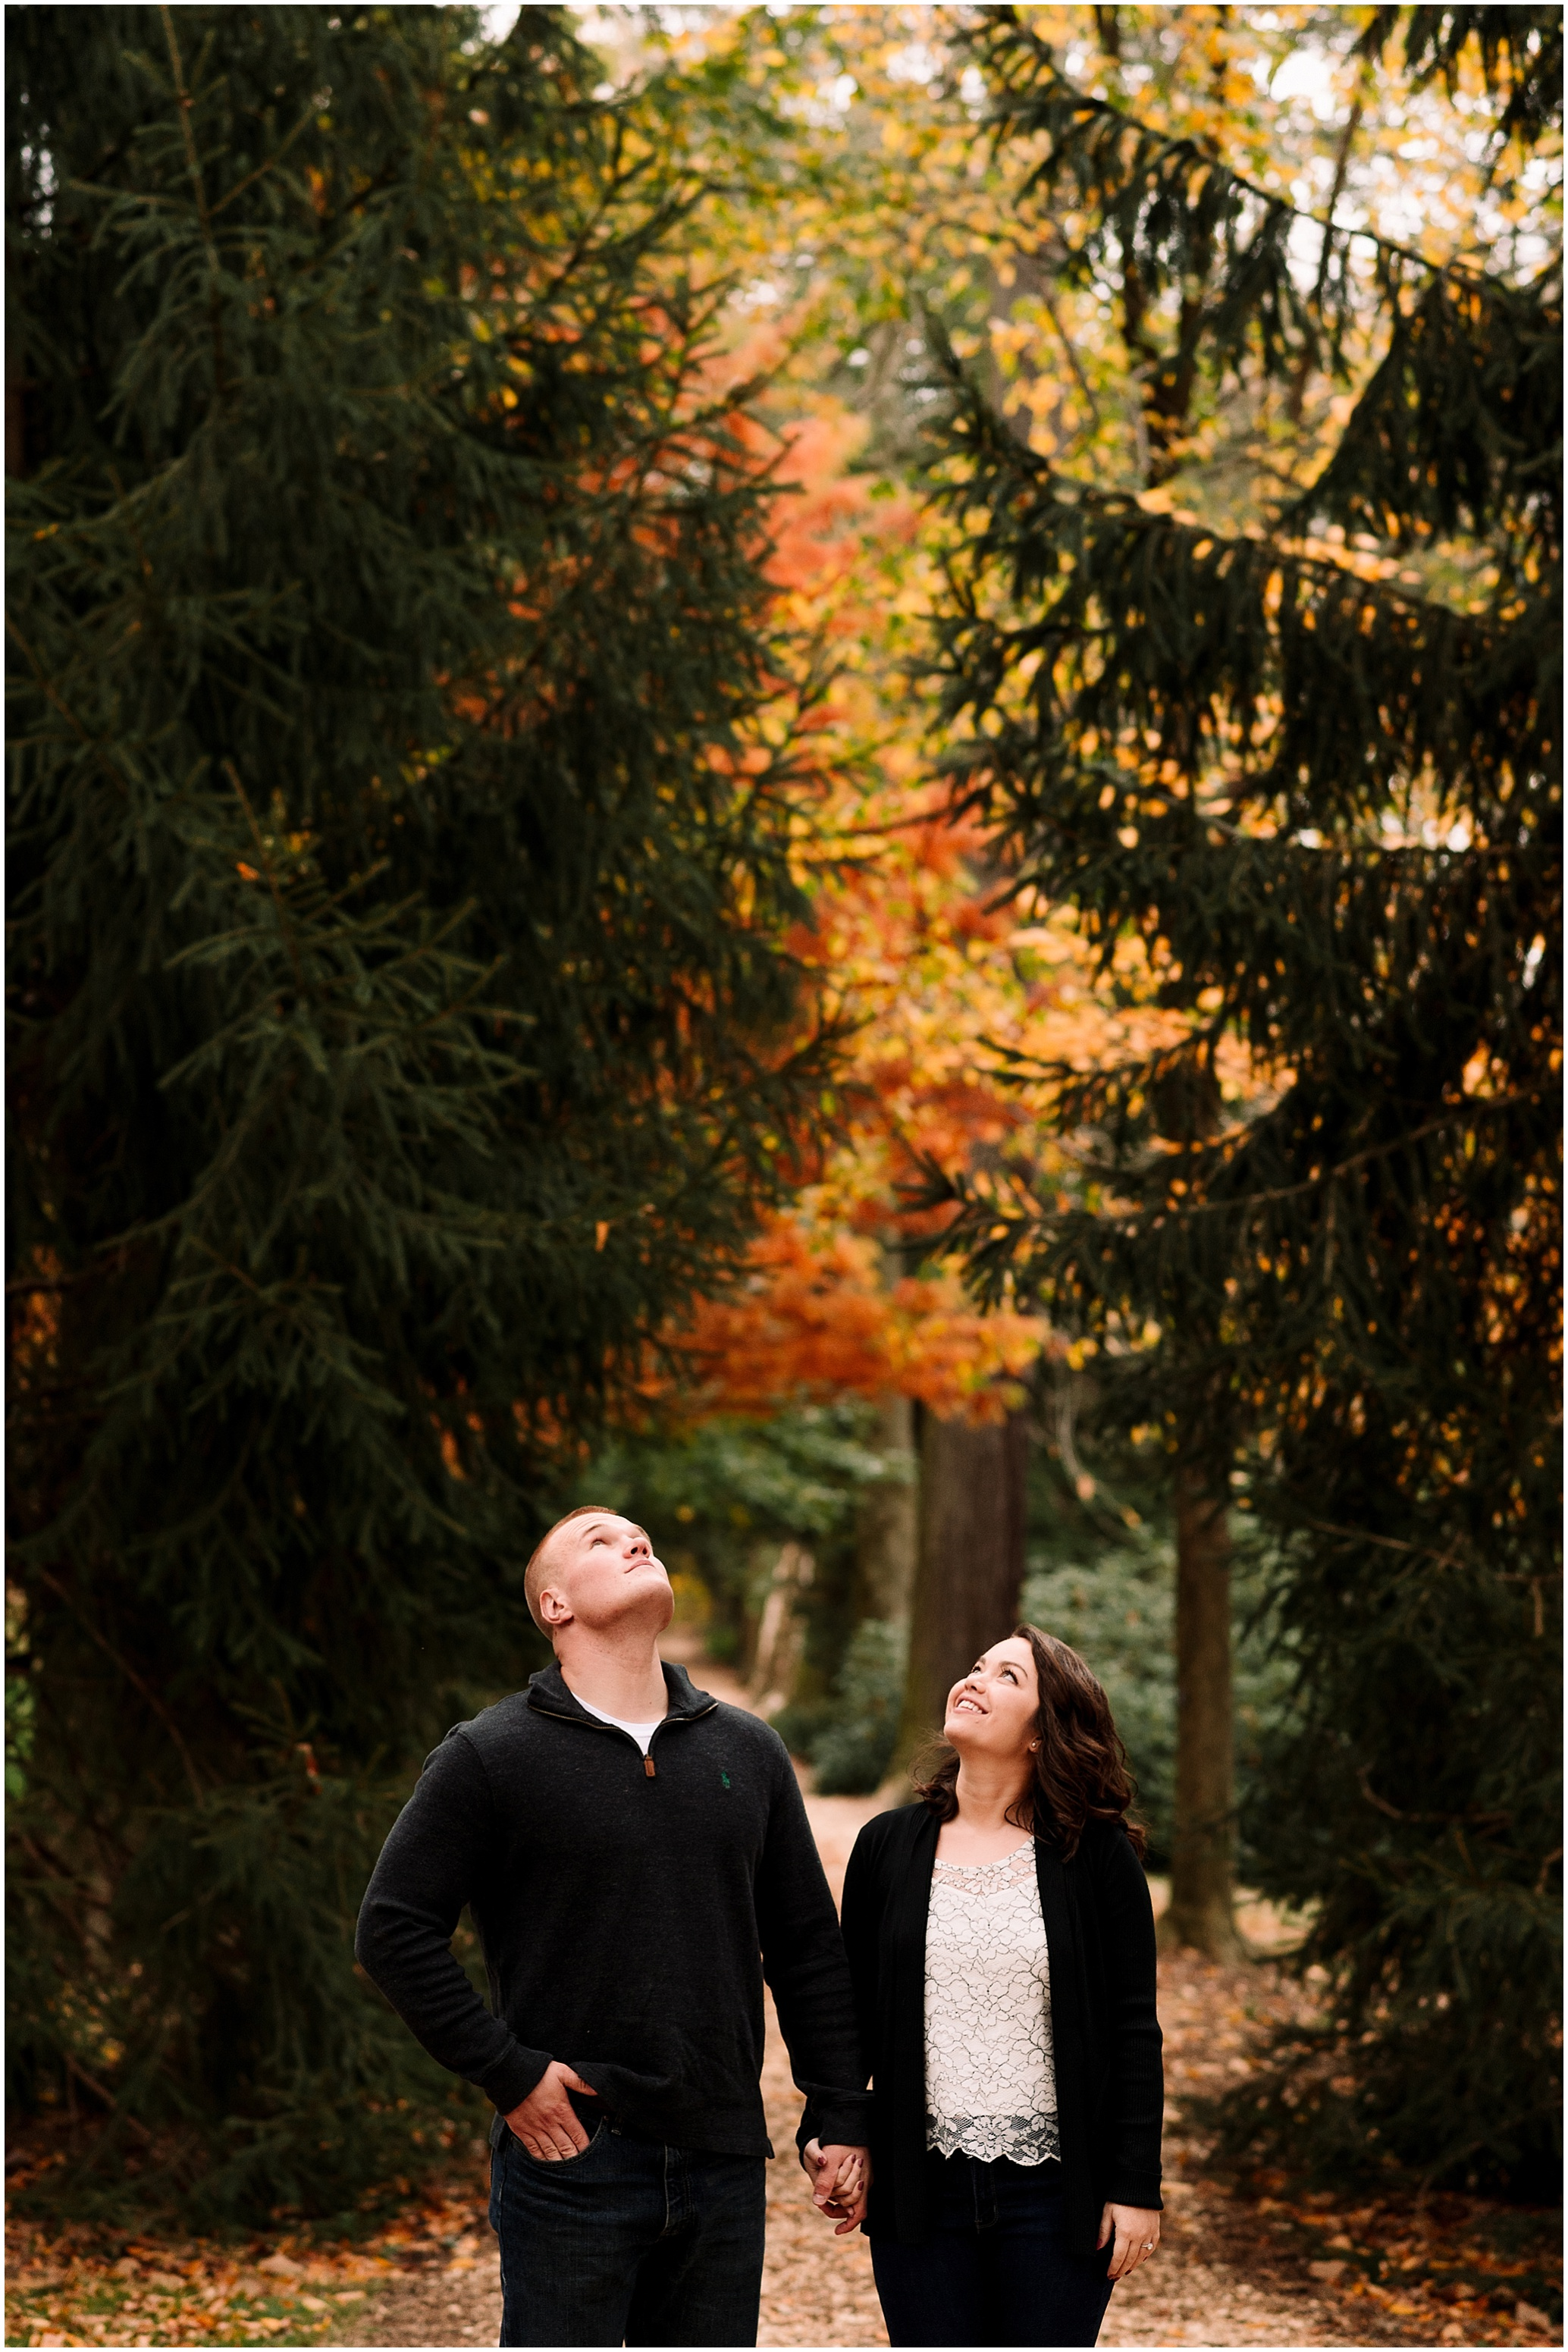 Hannah Leigh Photography Longwood Gardens Engagement Session_6634.jpg